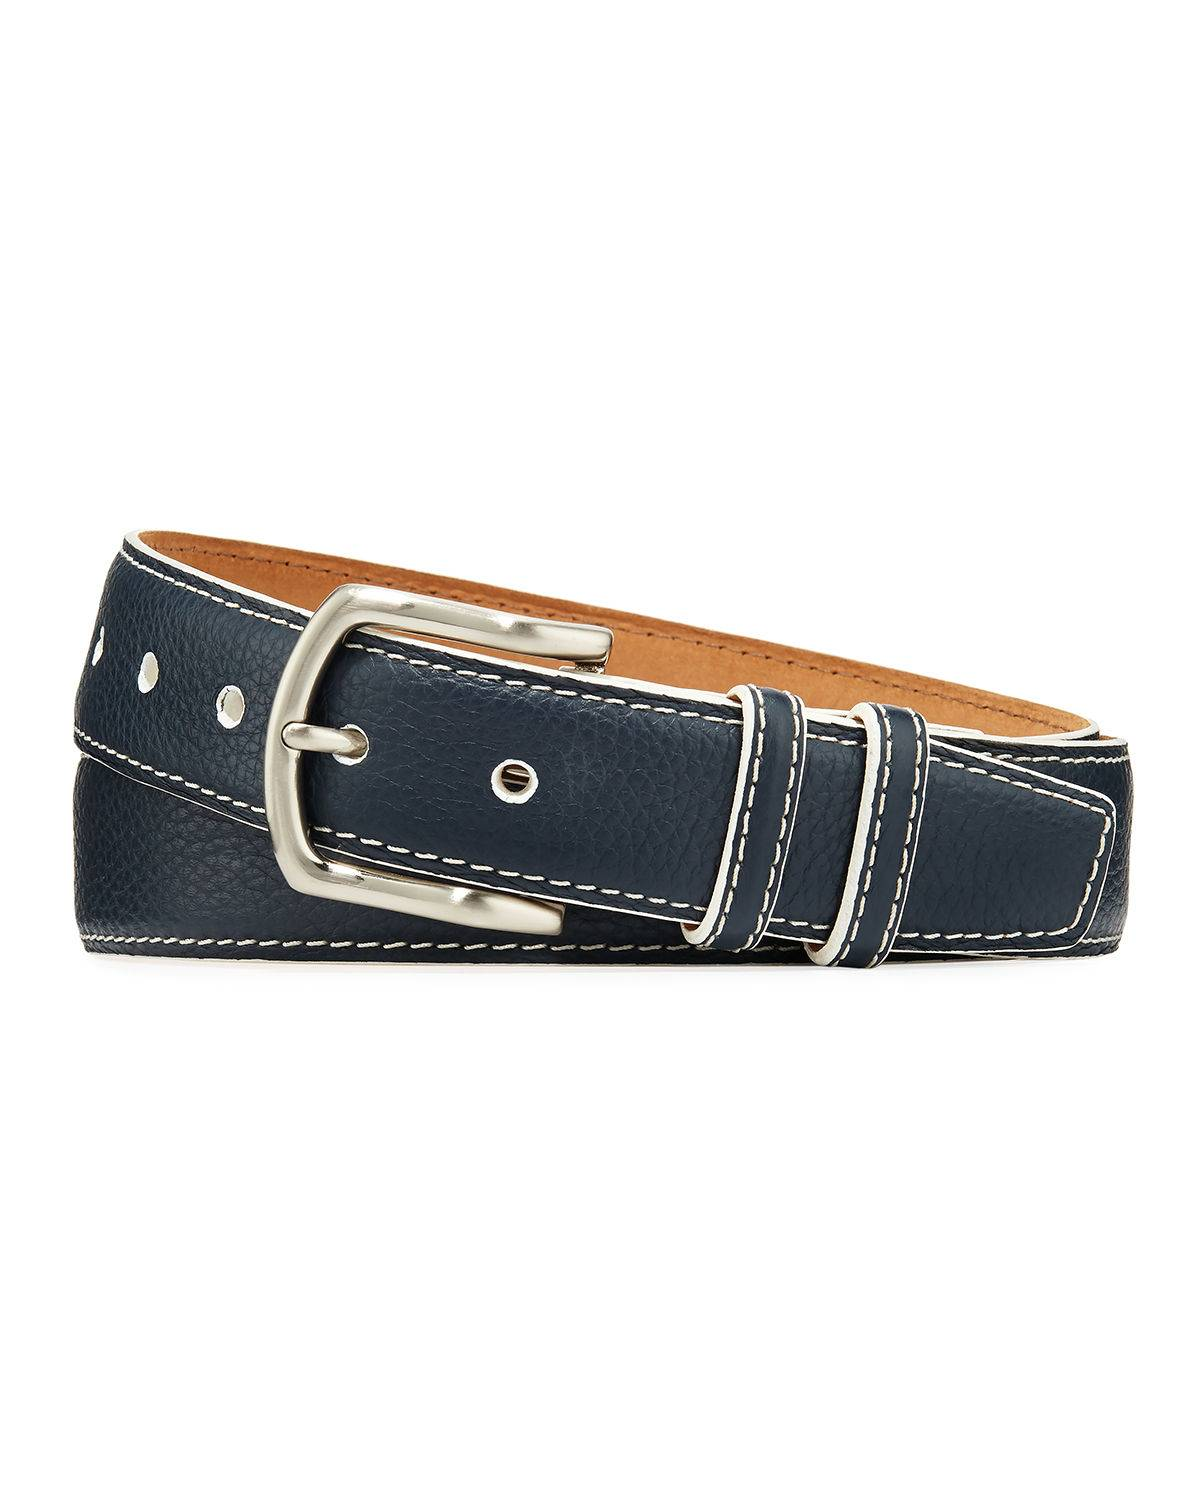 W. Kleinberg Men's South Beach Pebbled Leather Belt  - male - NAVY - Size: 42in / 105cm